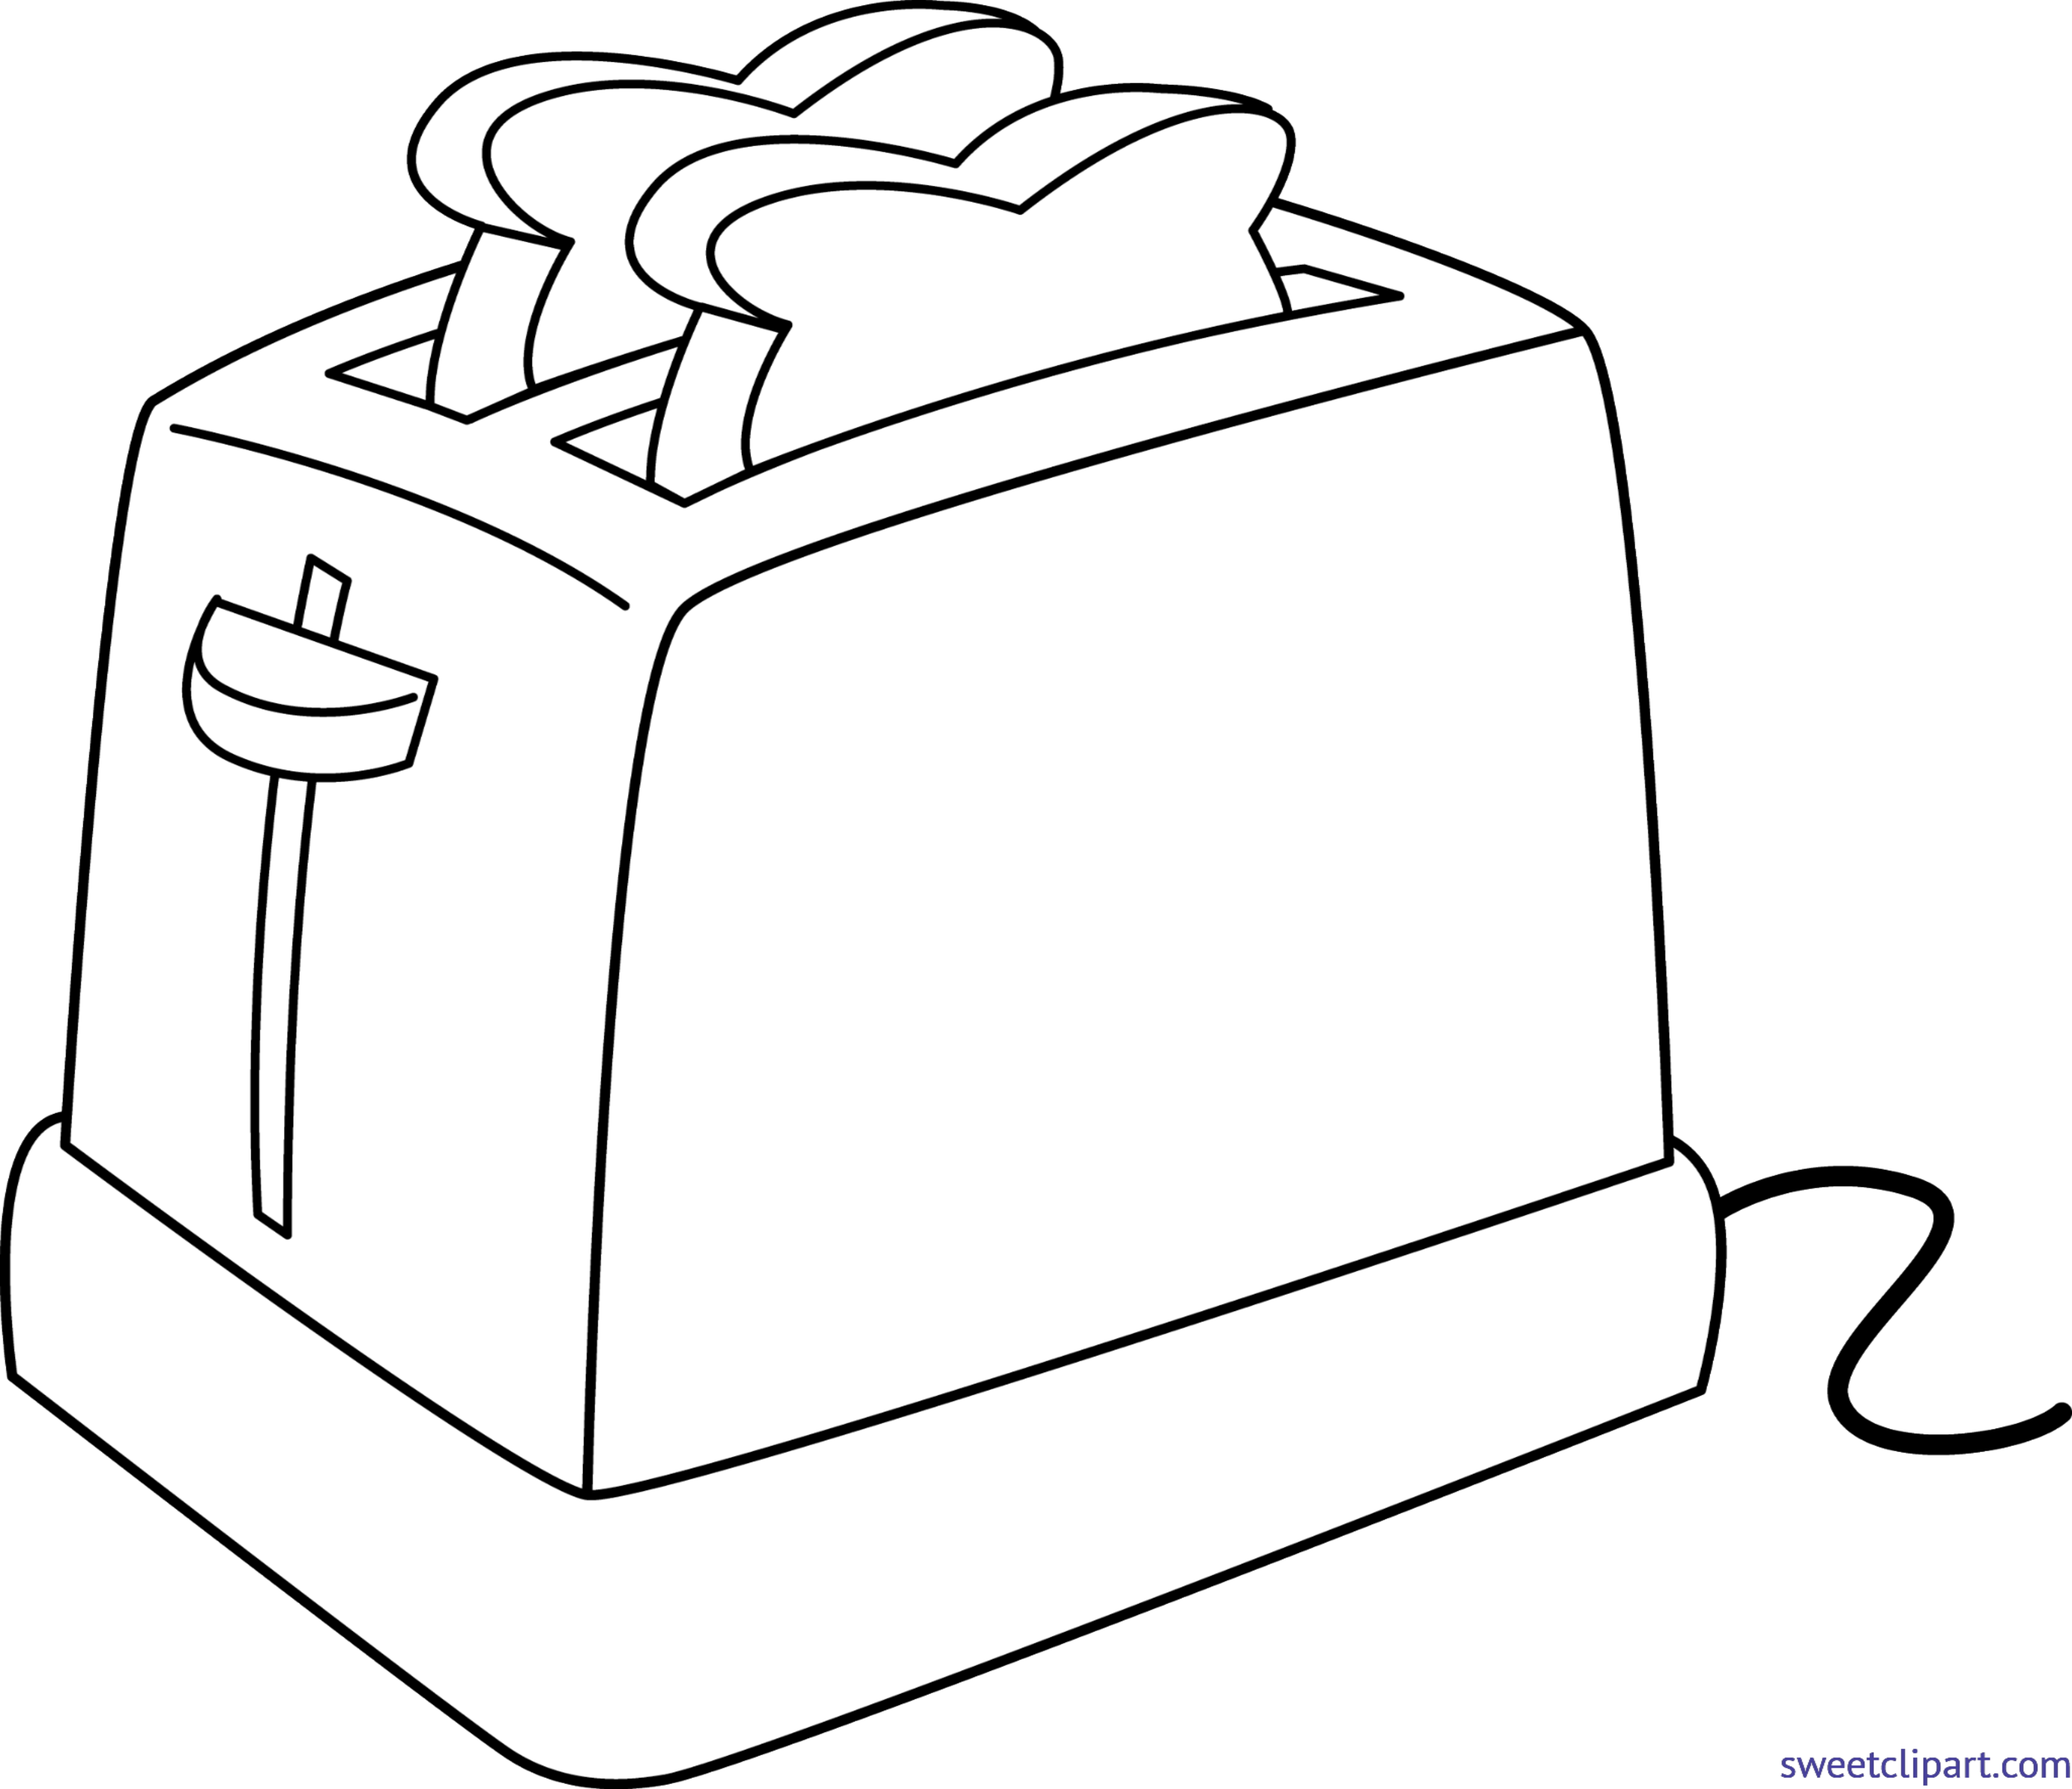 picture free download Lineart clip art sweet. Toaster clipart